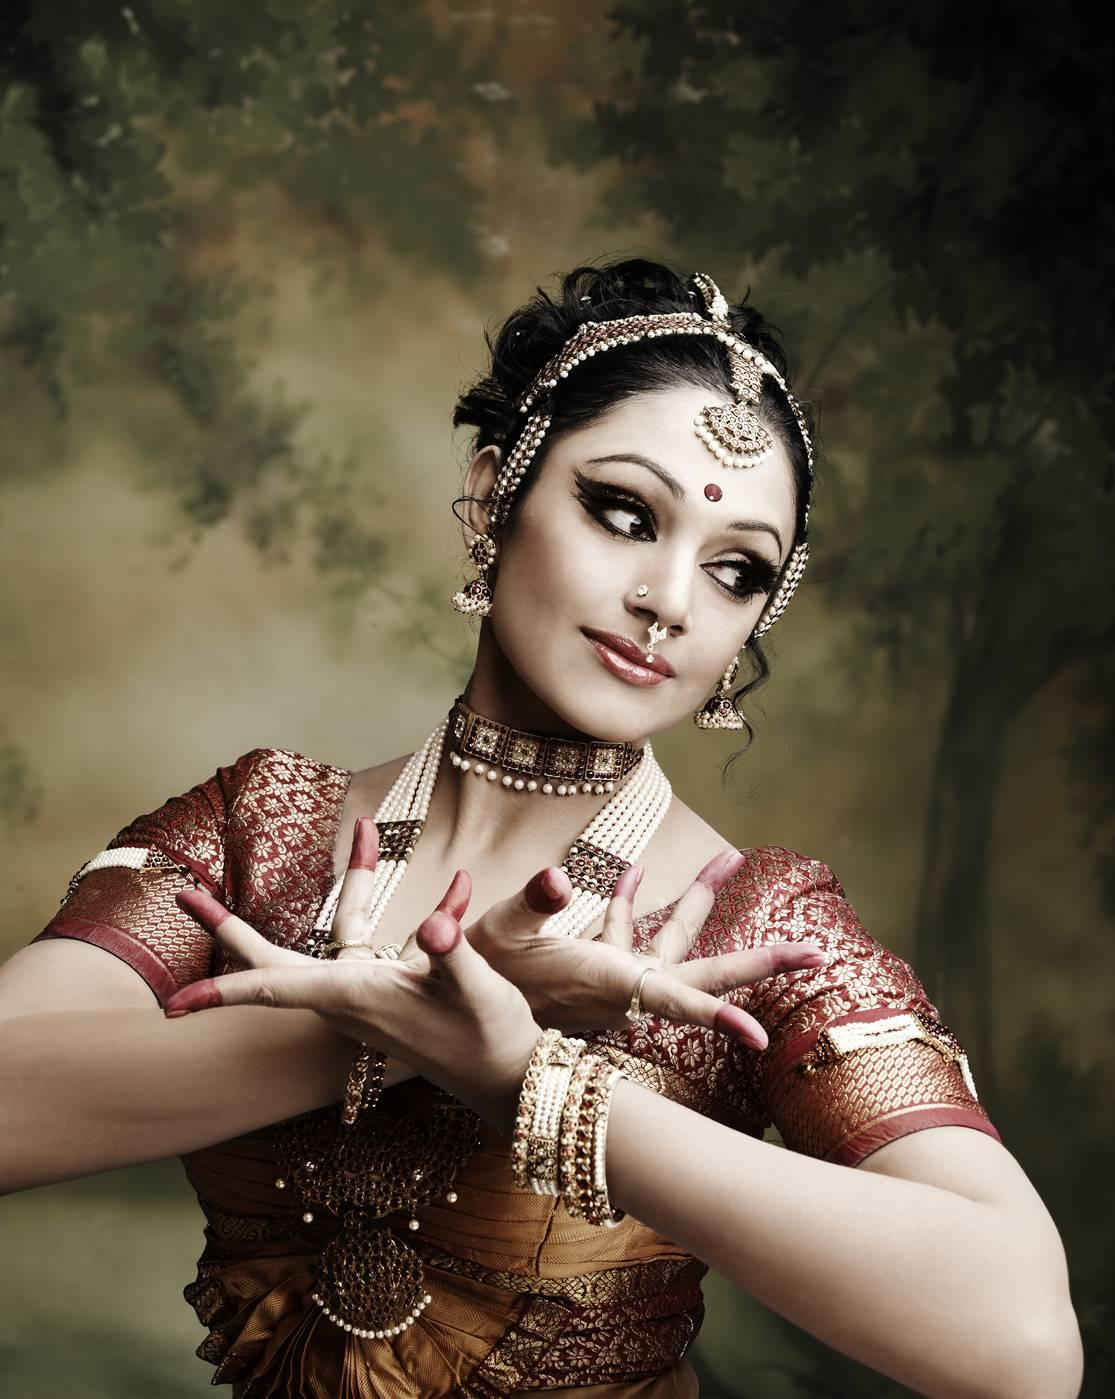 Filed under: shobana dance bhrathanatyam youtube music indian classical ...